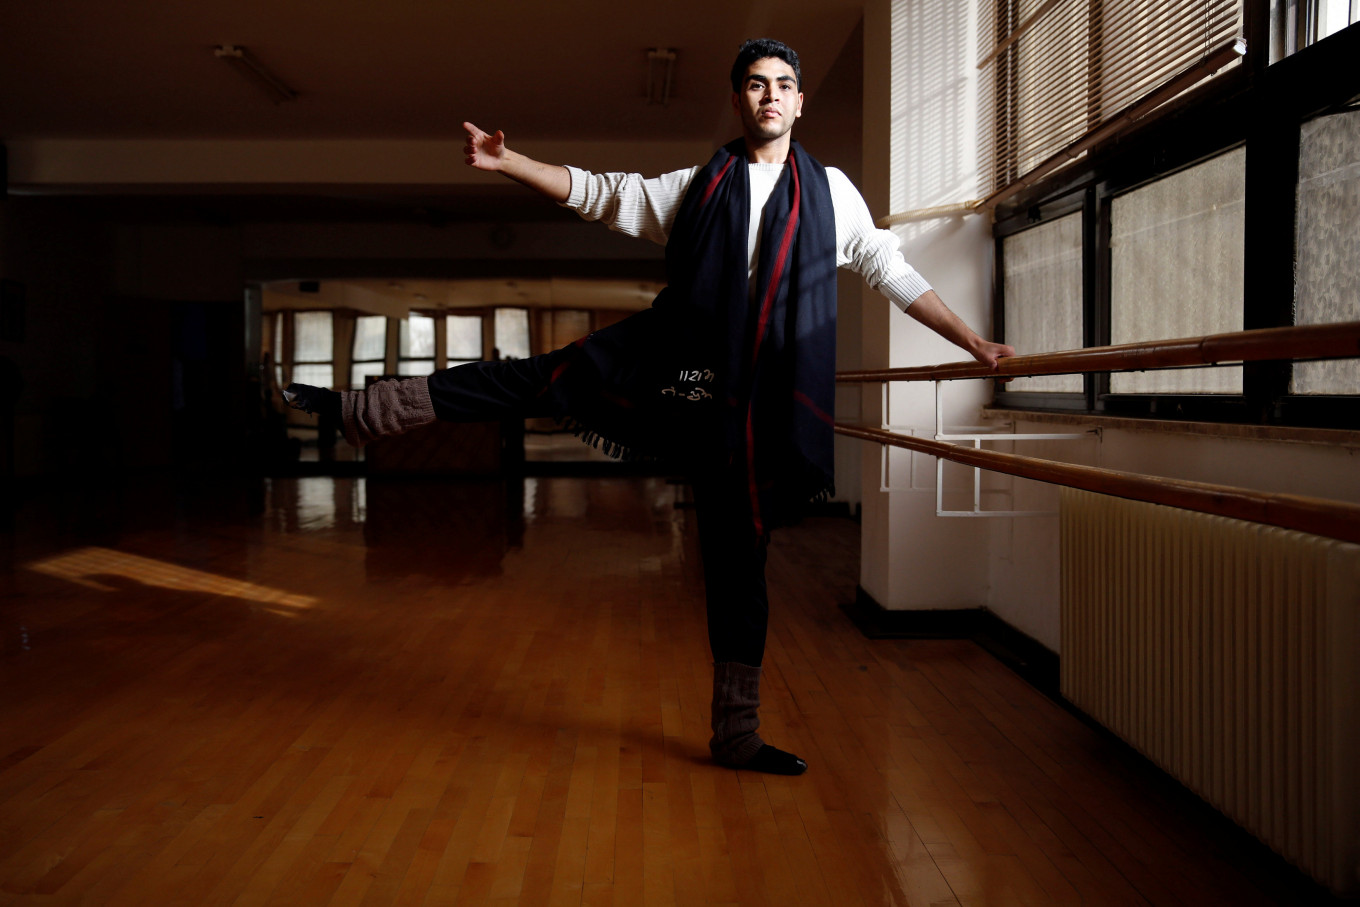 Male ballet dancer hopes to break stereotypes in Jordan